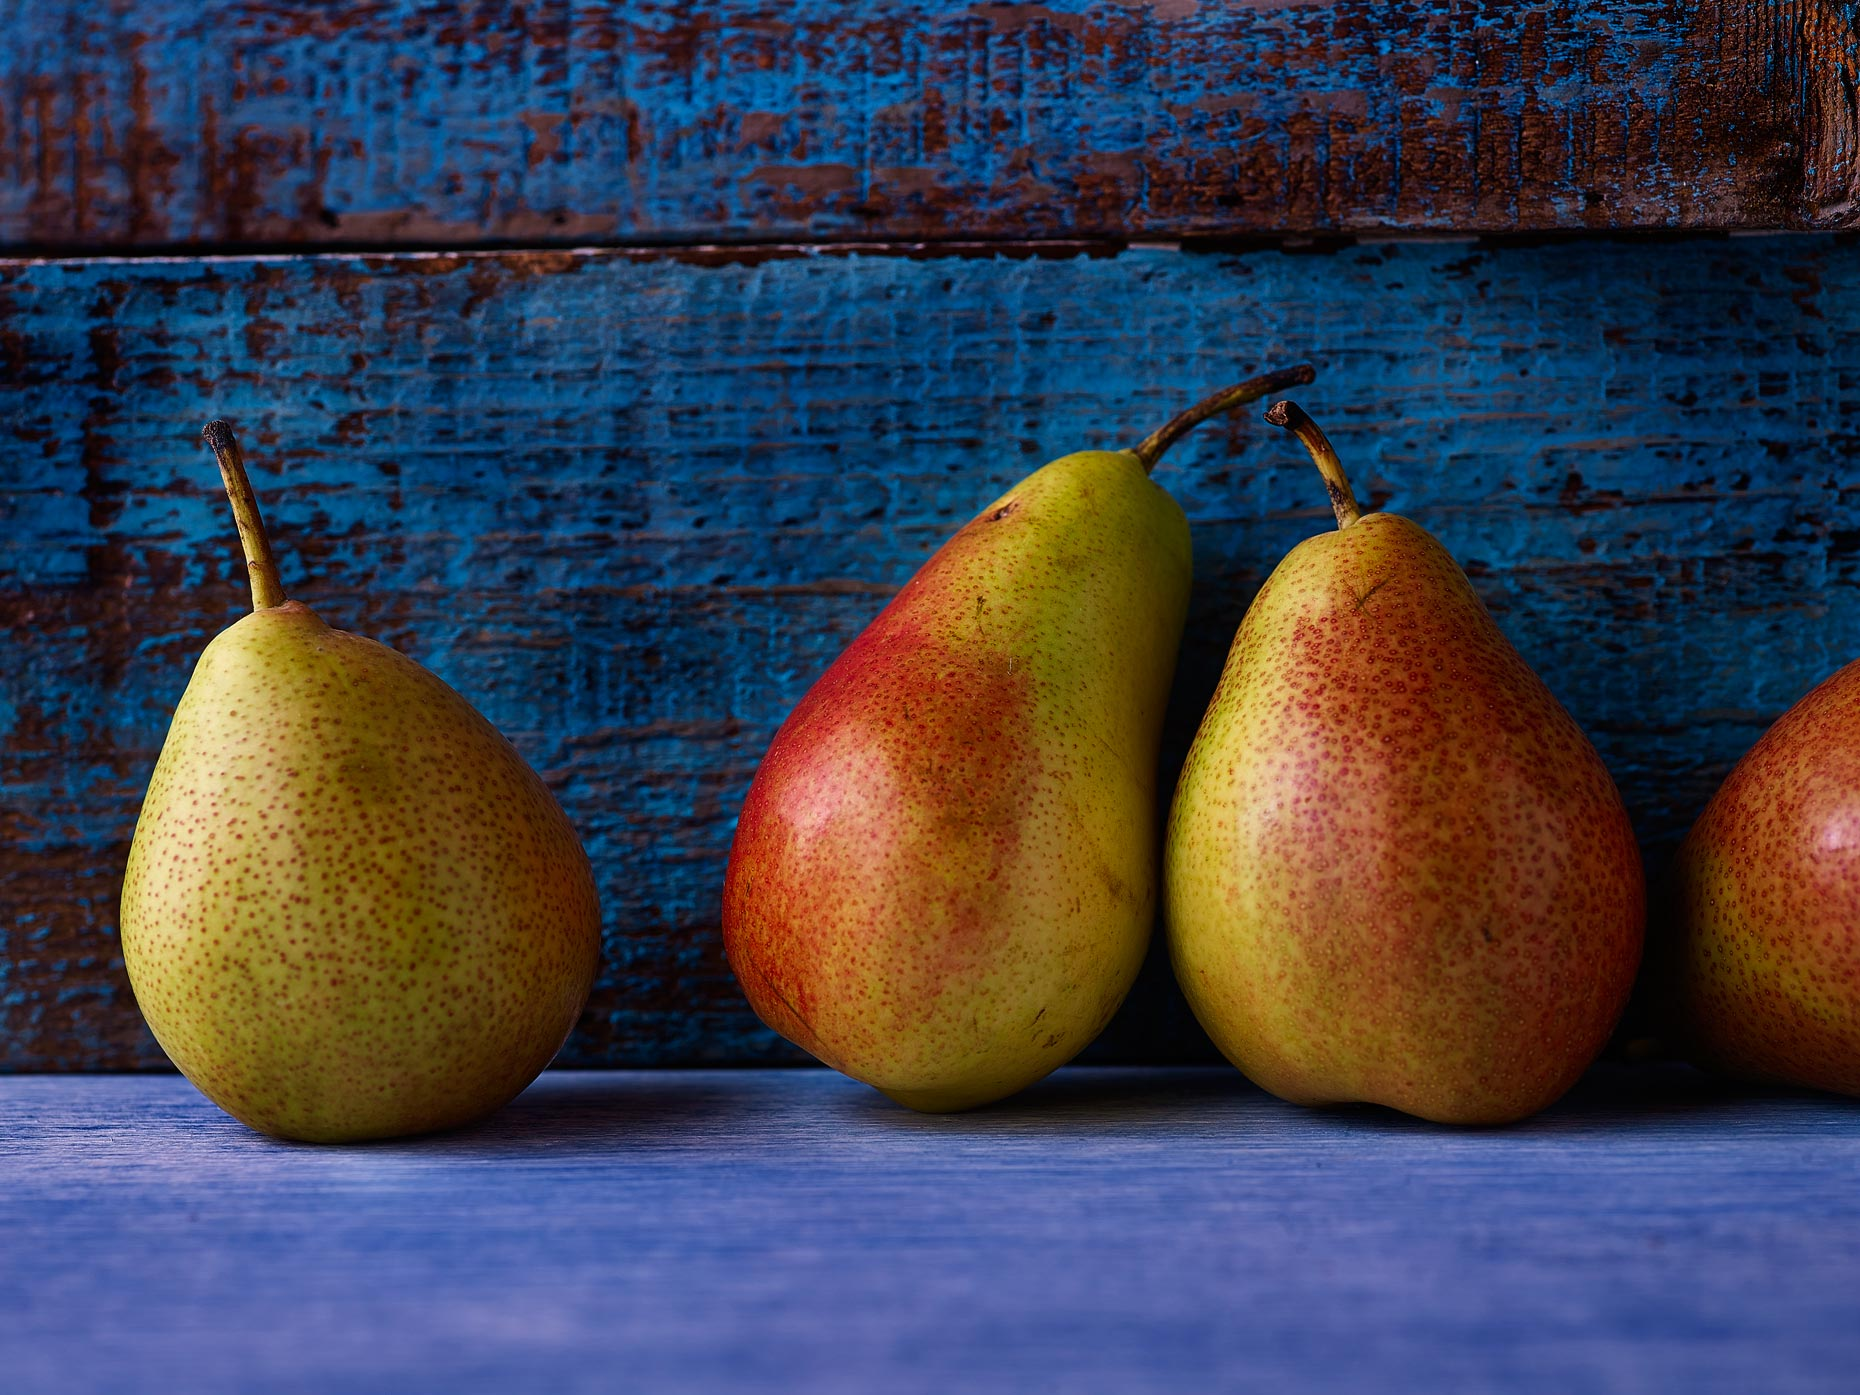 Dessert Photography | Pears Dessert Photography